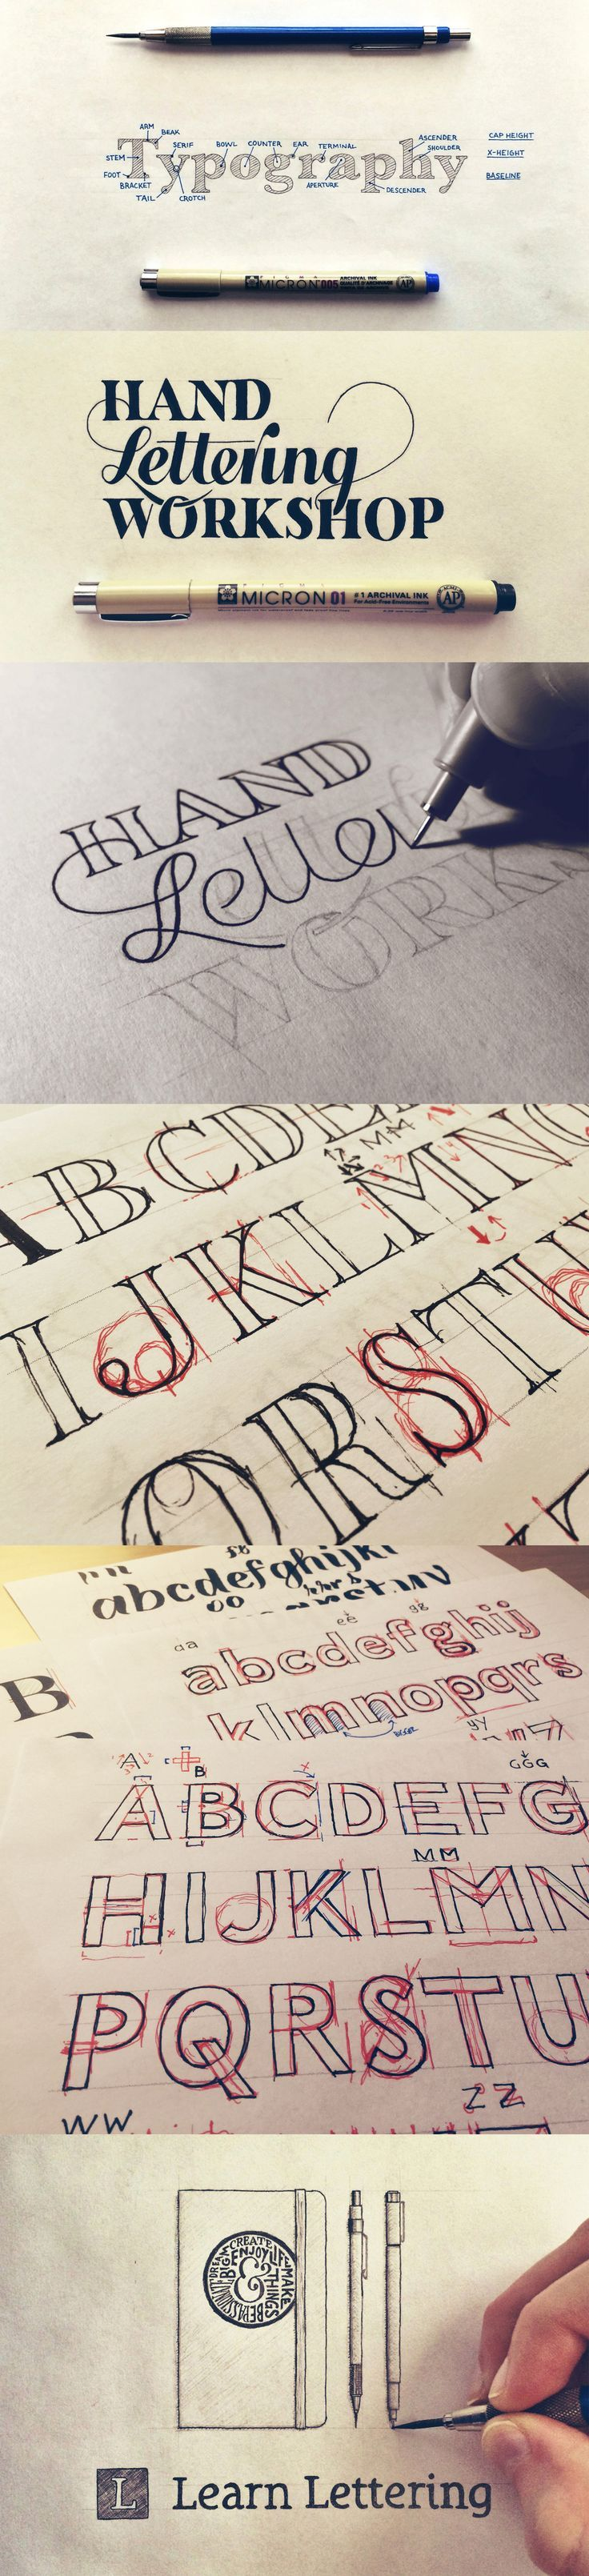 how to learn calligraphy free